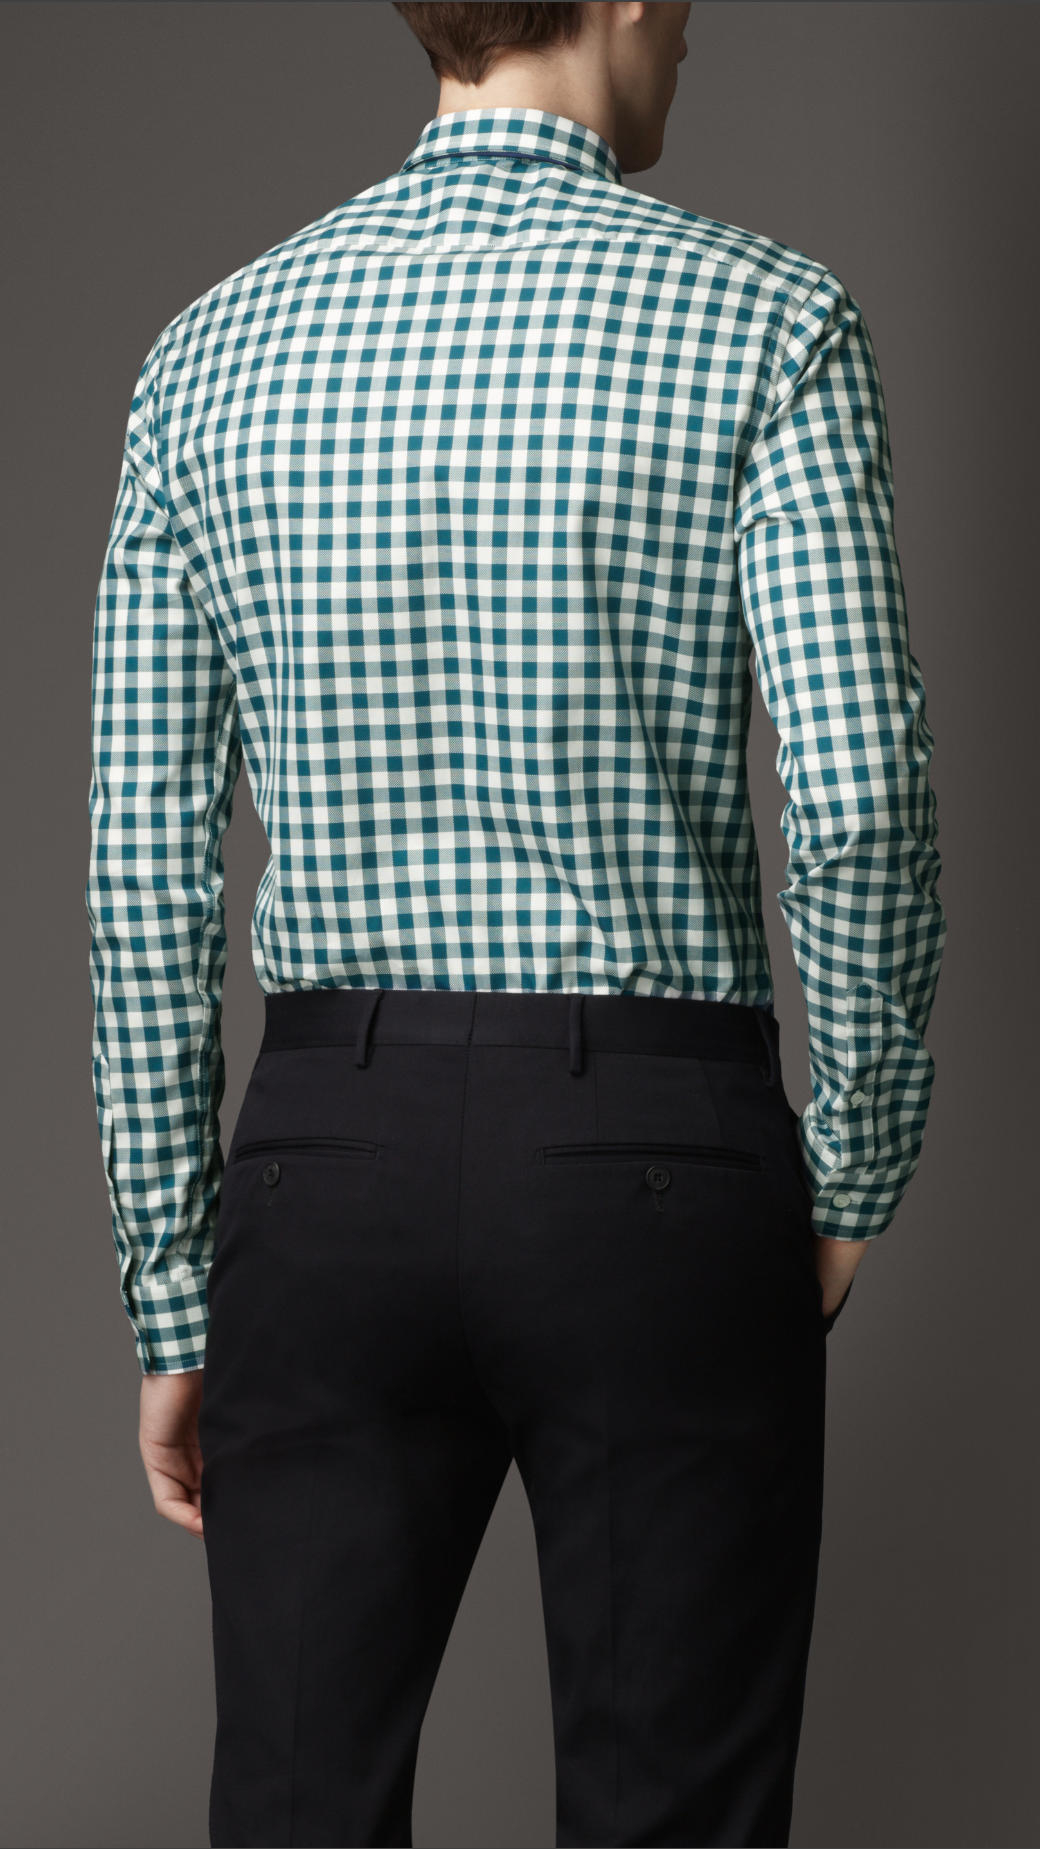 Burberry Slim Fit Cotton Gingham Shirt In Green For Men Lyst